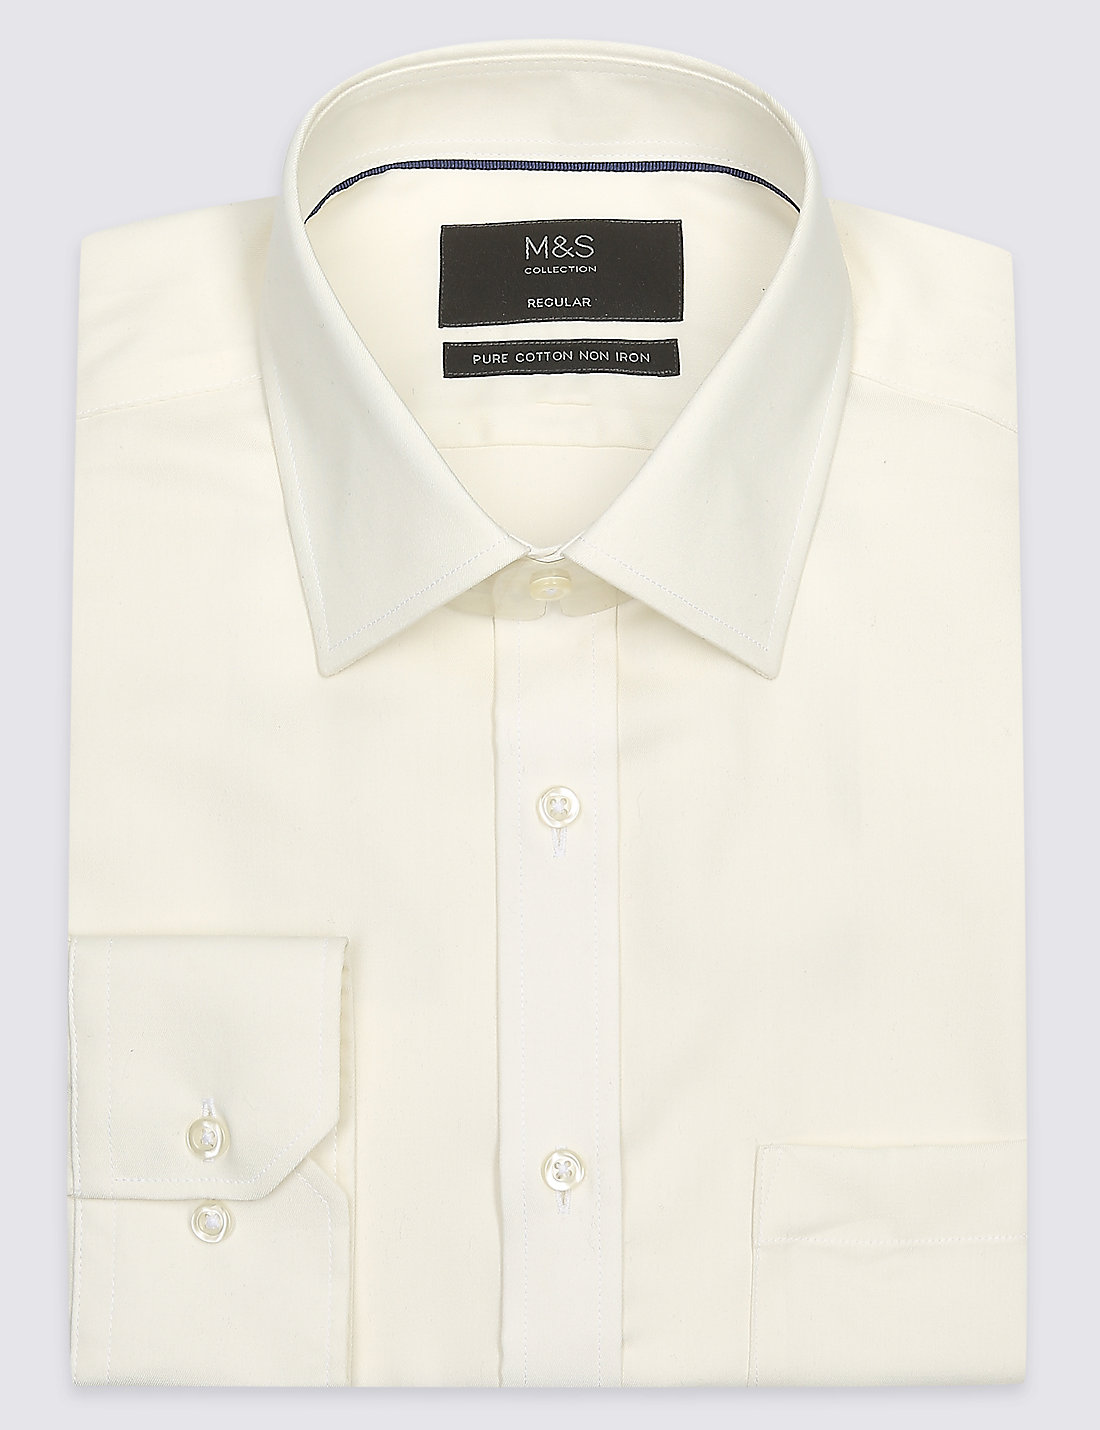 Cream Formal Shirts | Buy Mens Ivory Formal Shirt Online | M&S